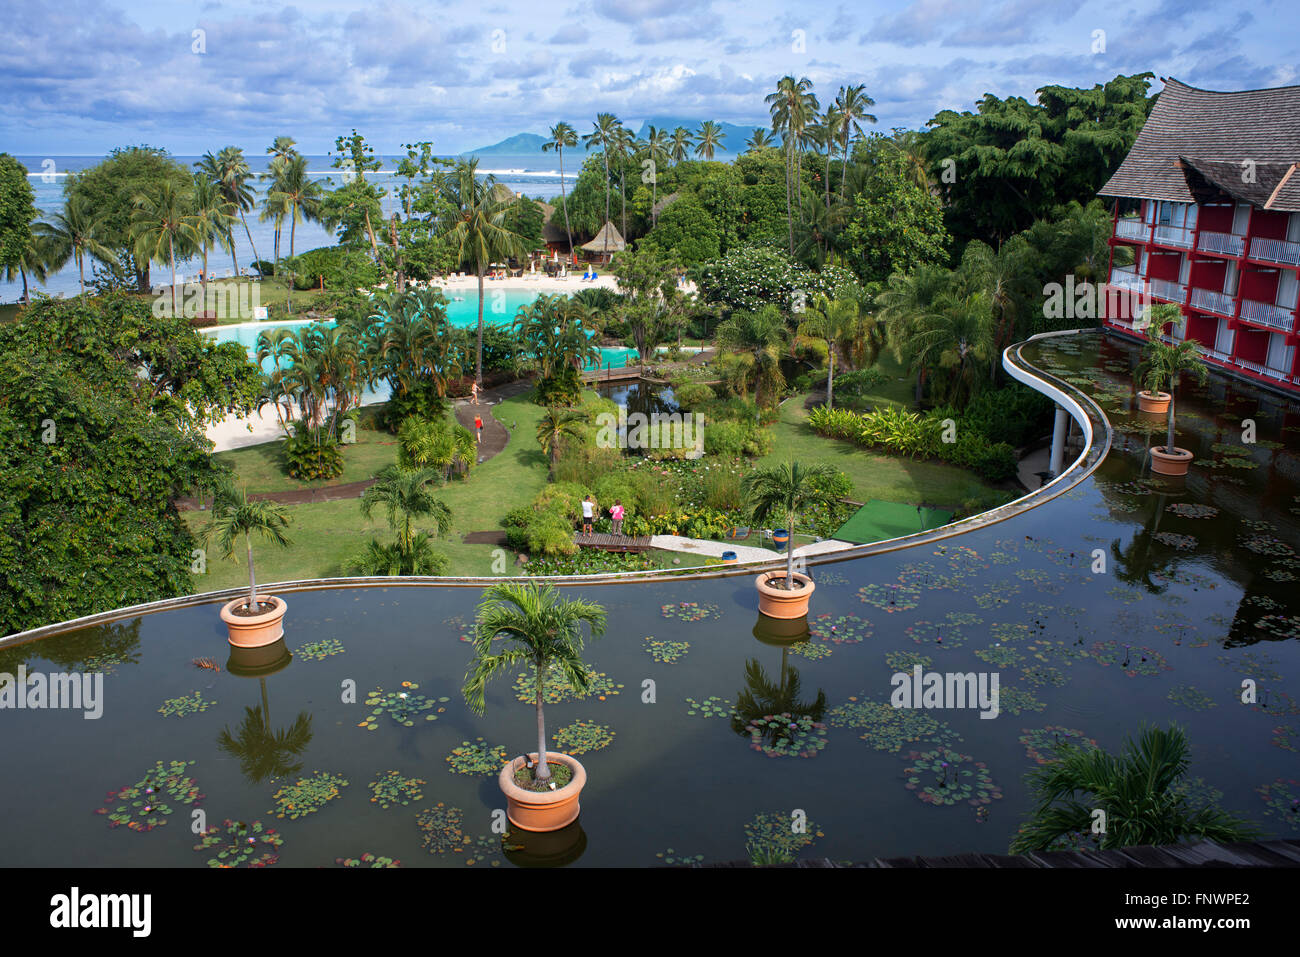 Meridien Hotel on the island of Tahiti, French Polynesia, Tahiti Nui, Society Islands, French Polynesia, South Pacific. - Stock Image